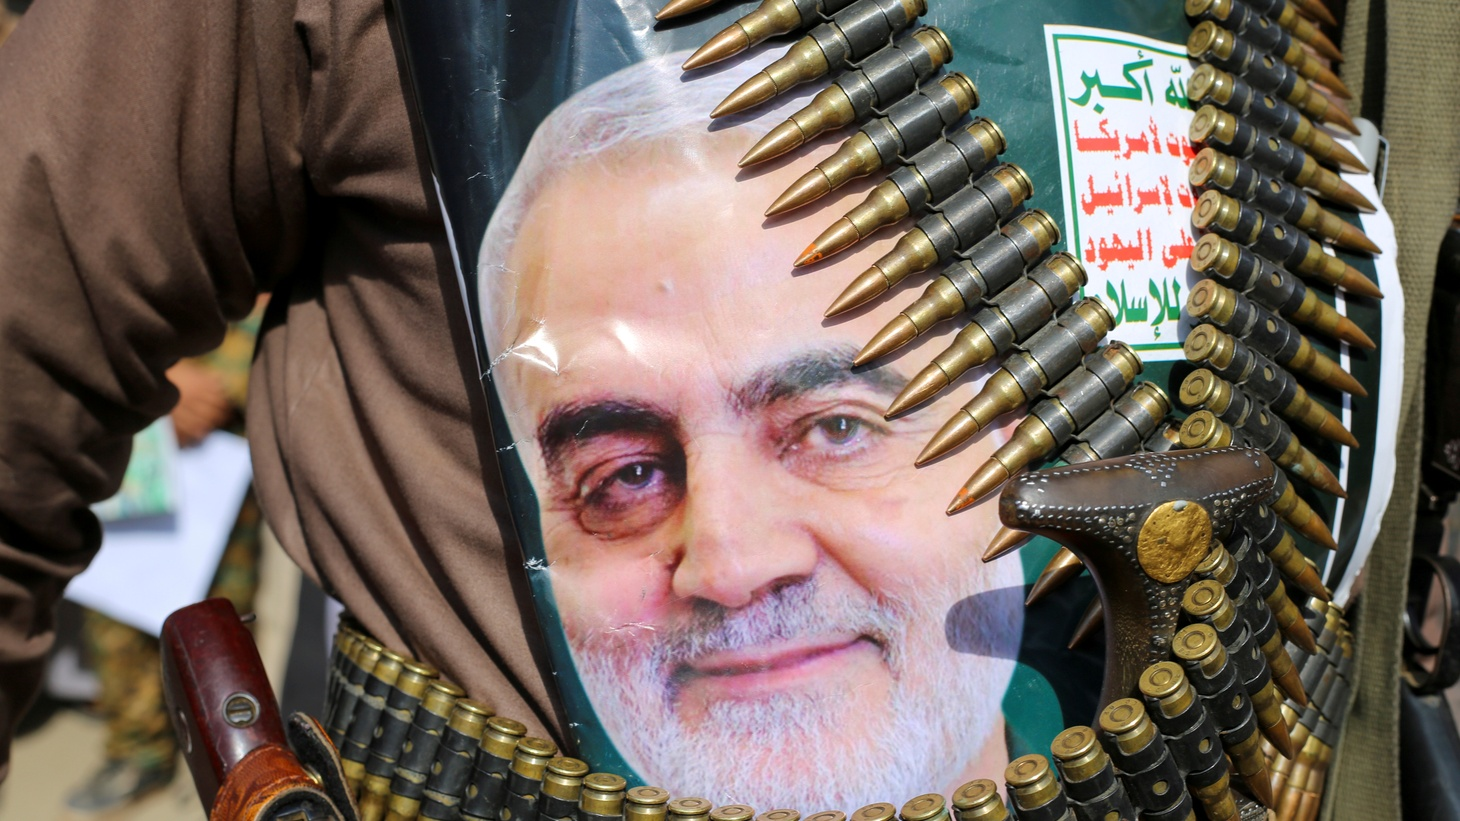 A supporter of the Houthis has a poster attached to his waist of Iranian Major-General Qassem Soleimani, who was killed in an air strike at Baghdad airport, during a rally to denounce the U.S. killing, in Saada, Yemen January 6, 2020.